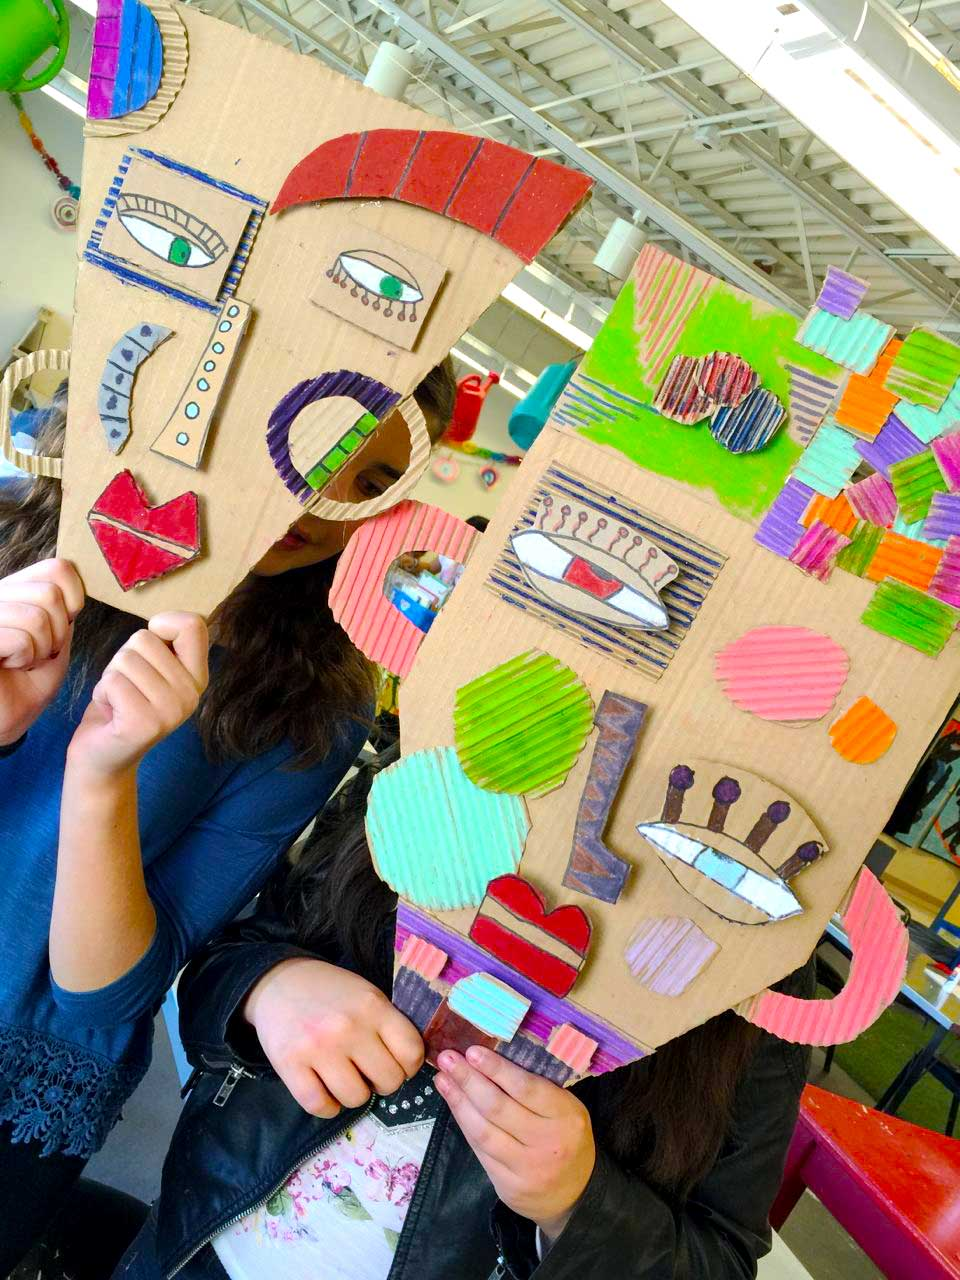 Handmakery masks in the making for Cardboard for projects